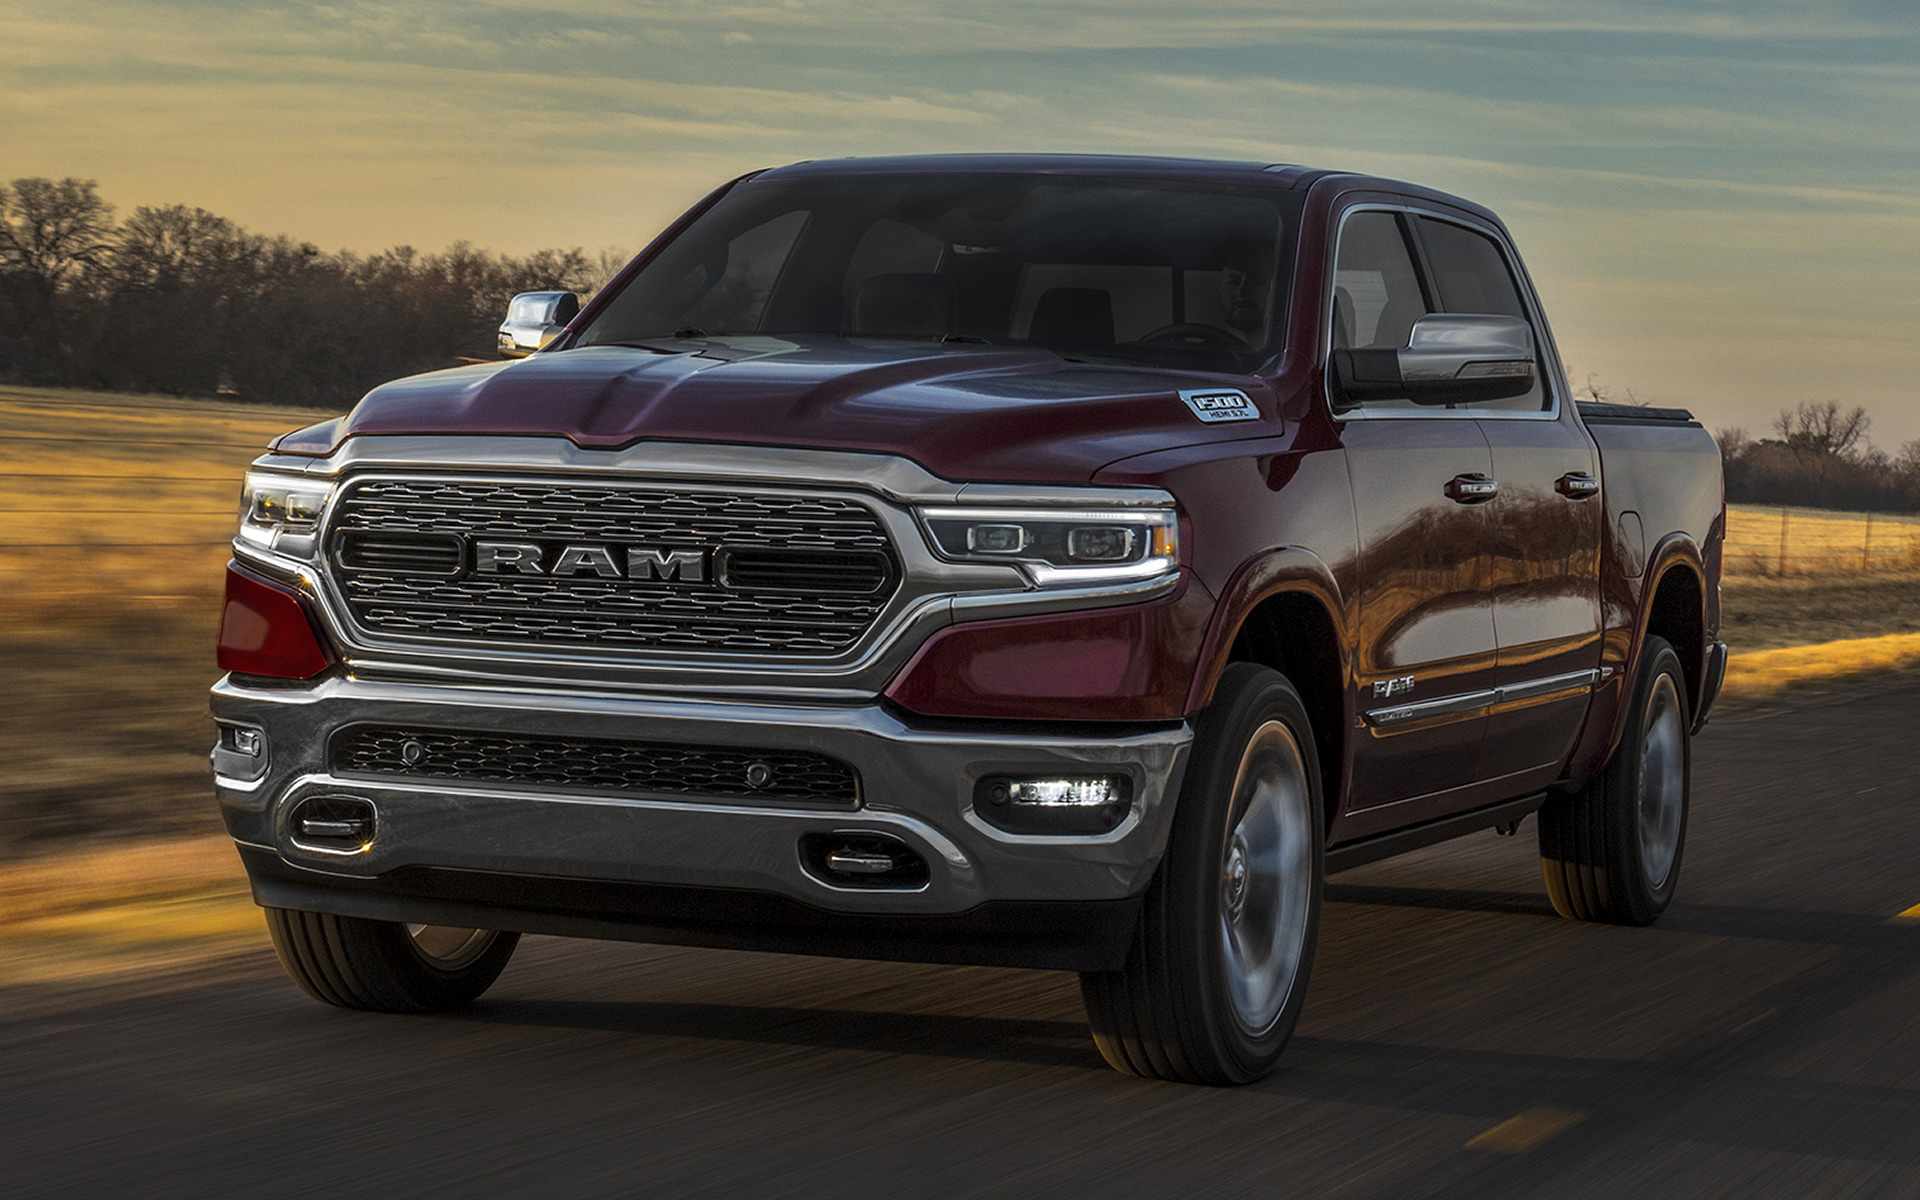 2019 Ram 1500 Limited Crew Cab [Short]   Wallpapers and HD Images 1920x1200